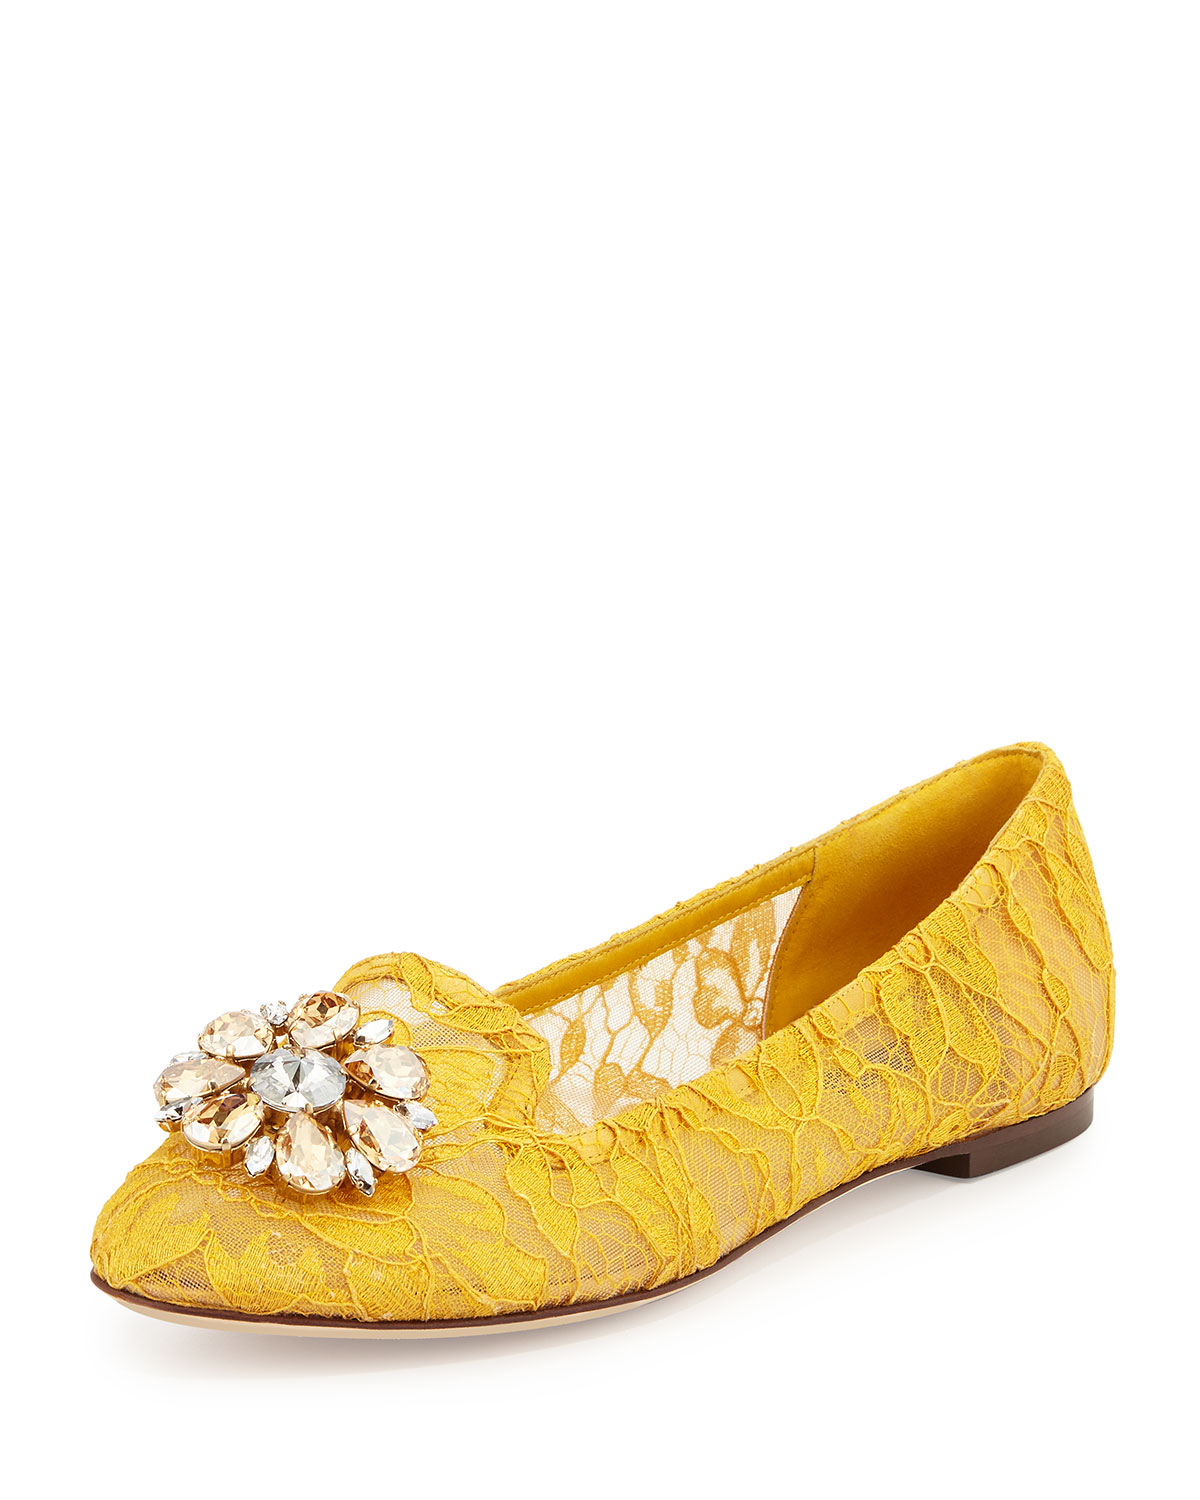 Crystal-Embellished Lace Loafer, Dark Yellow